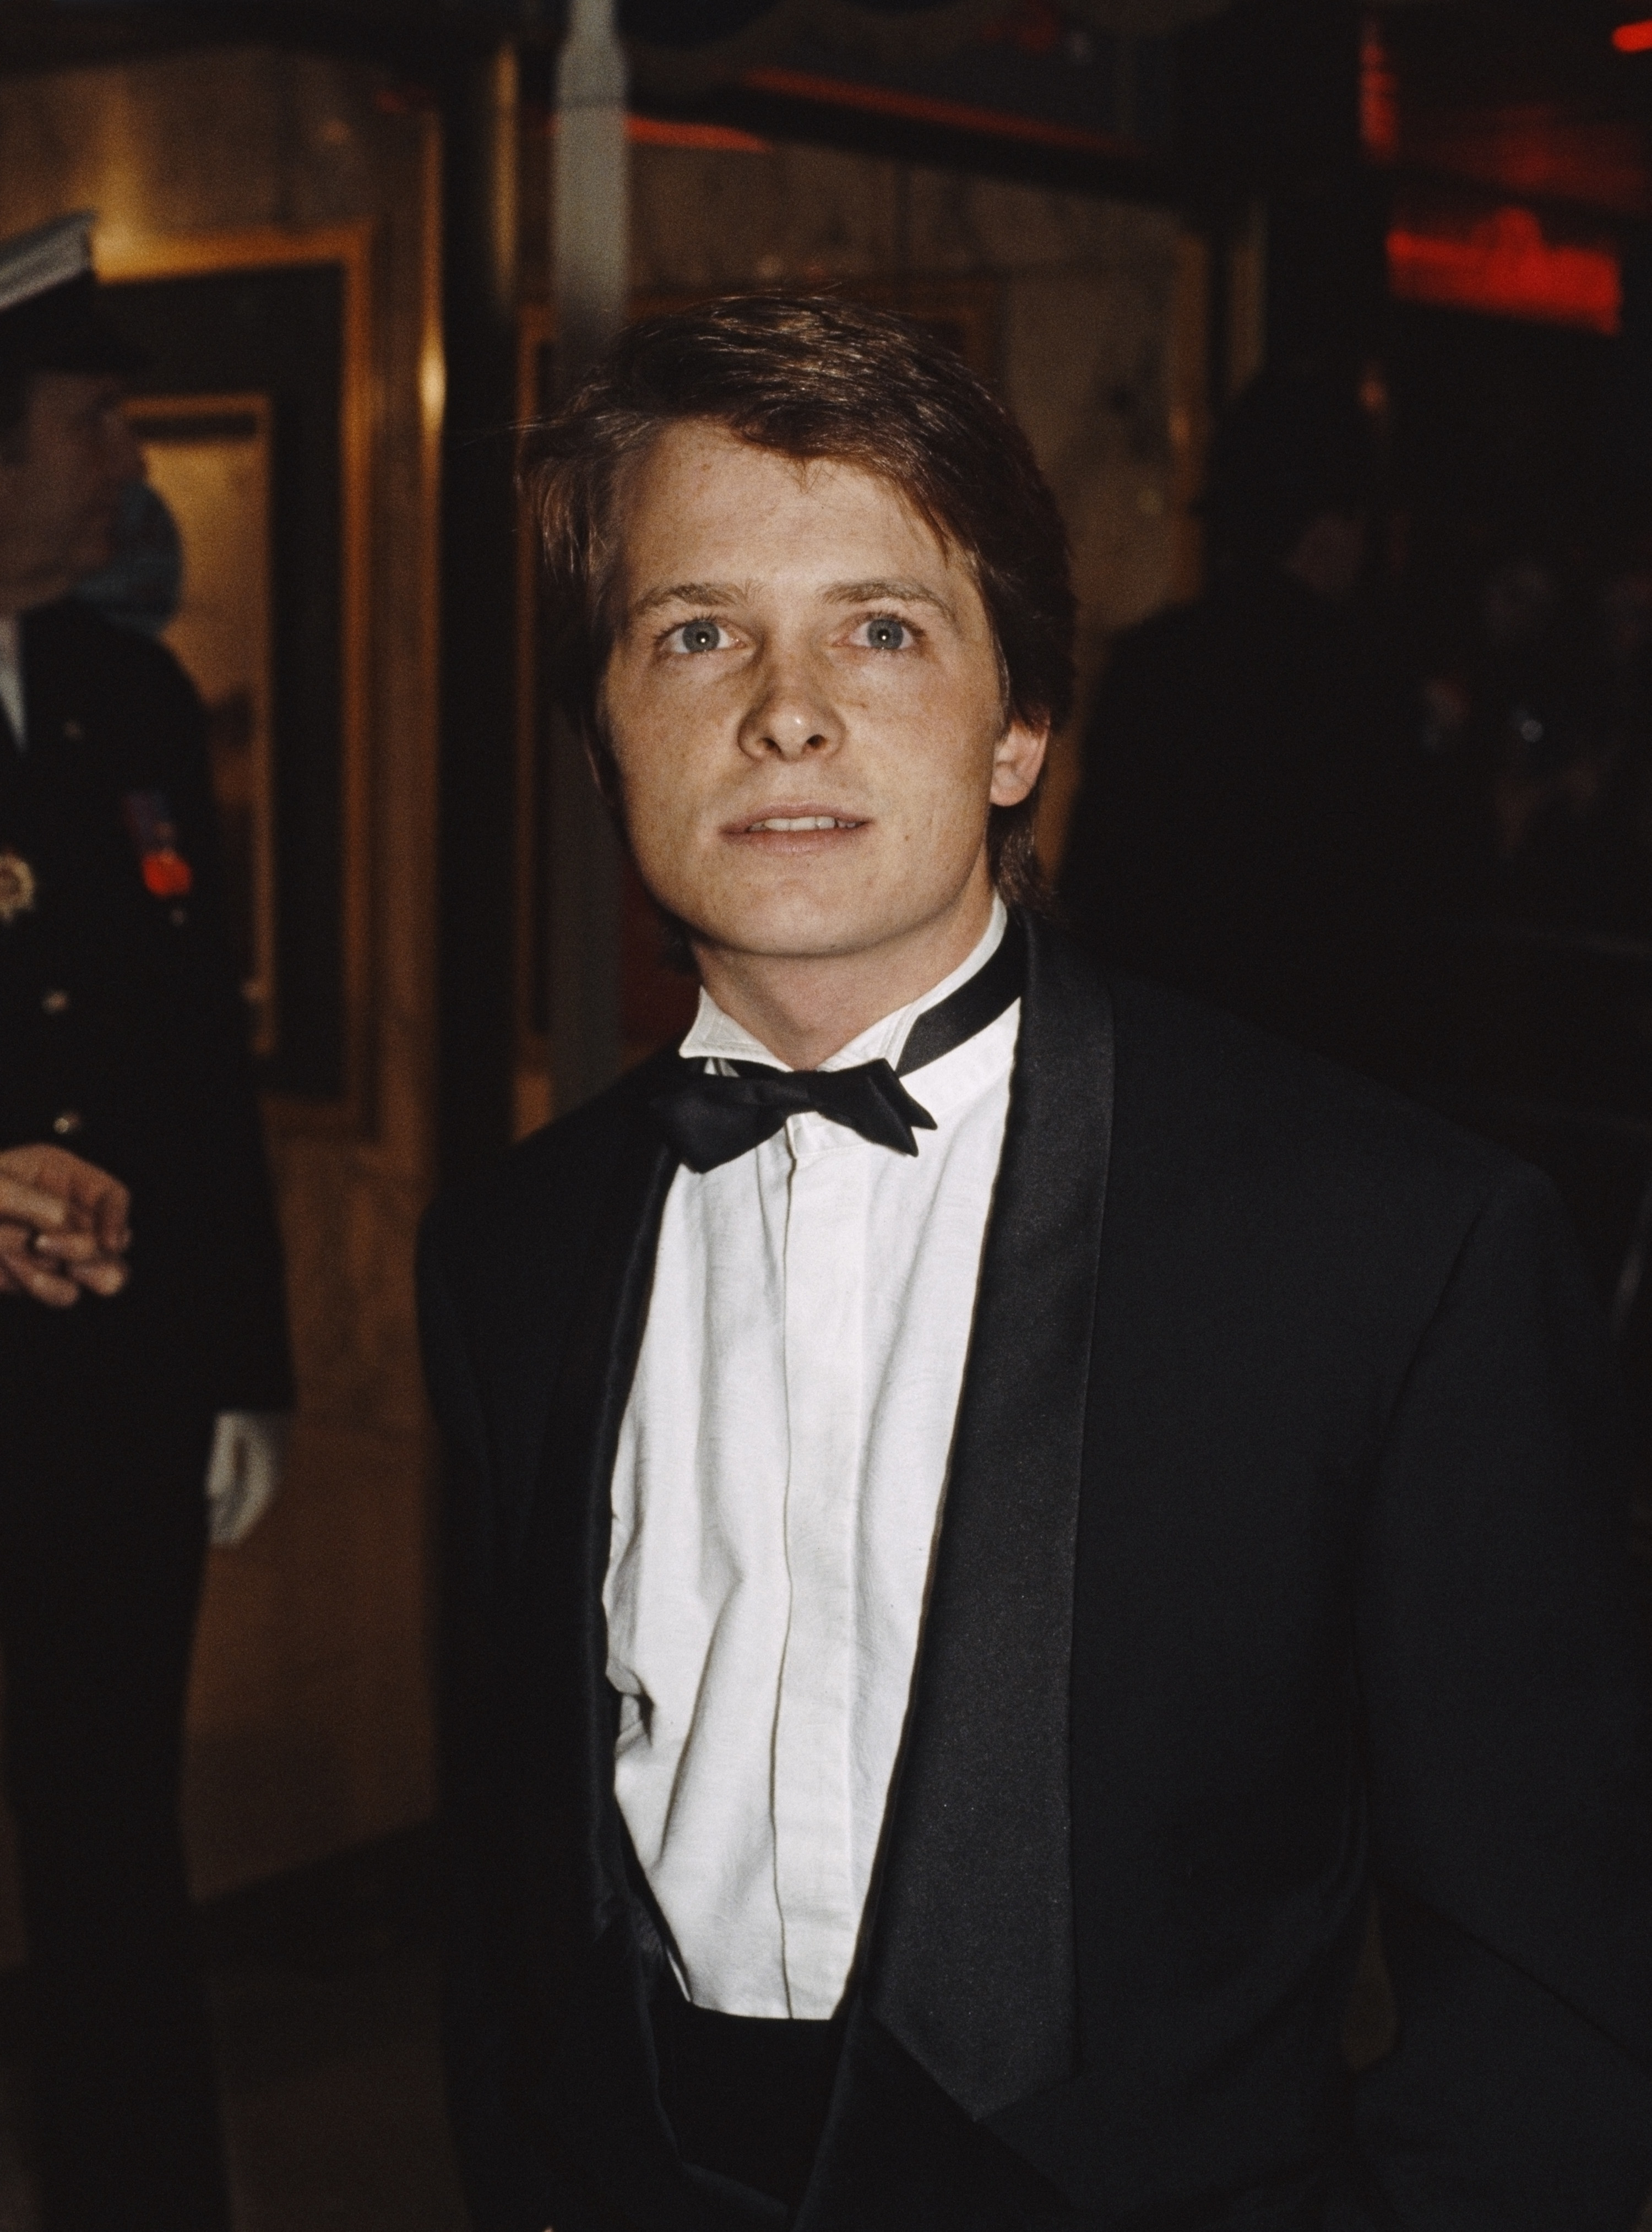 A young Michael wearing a bow-tie